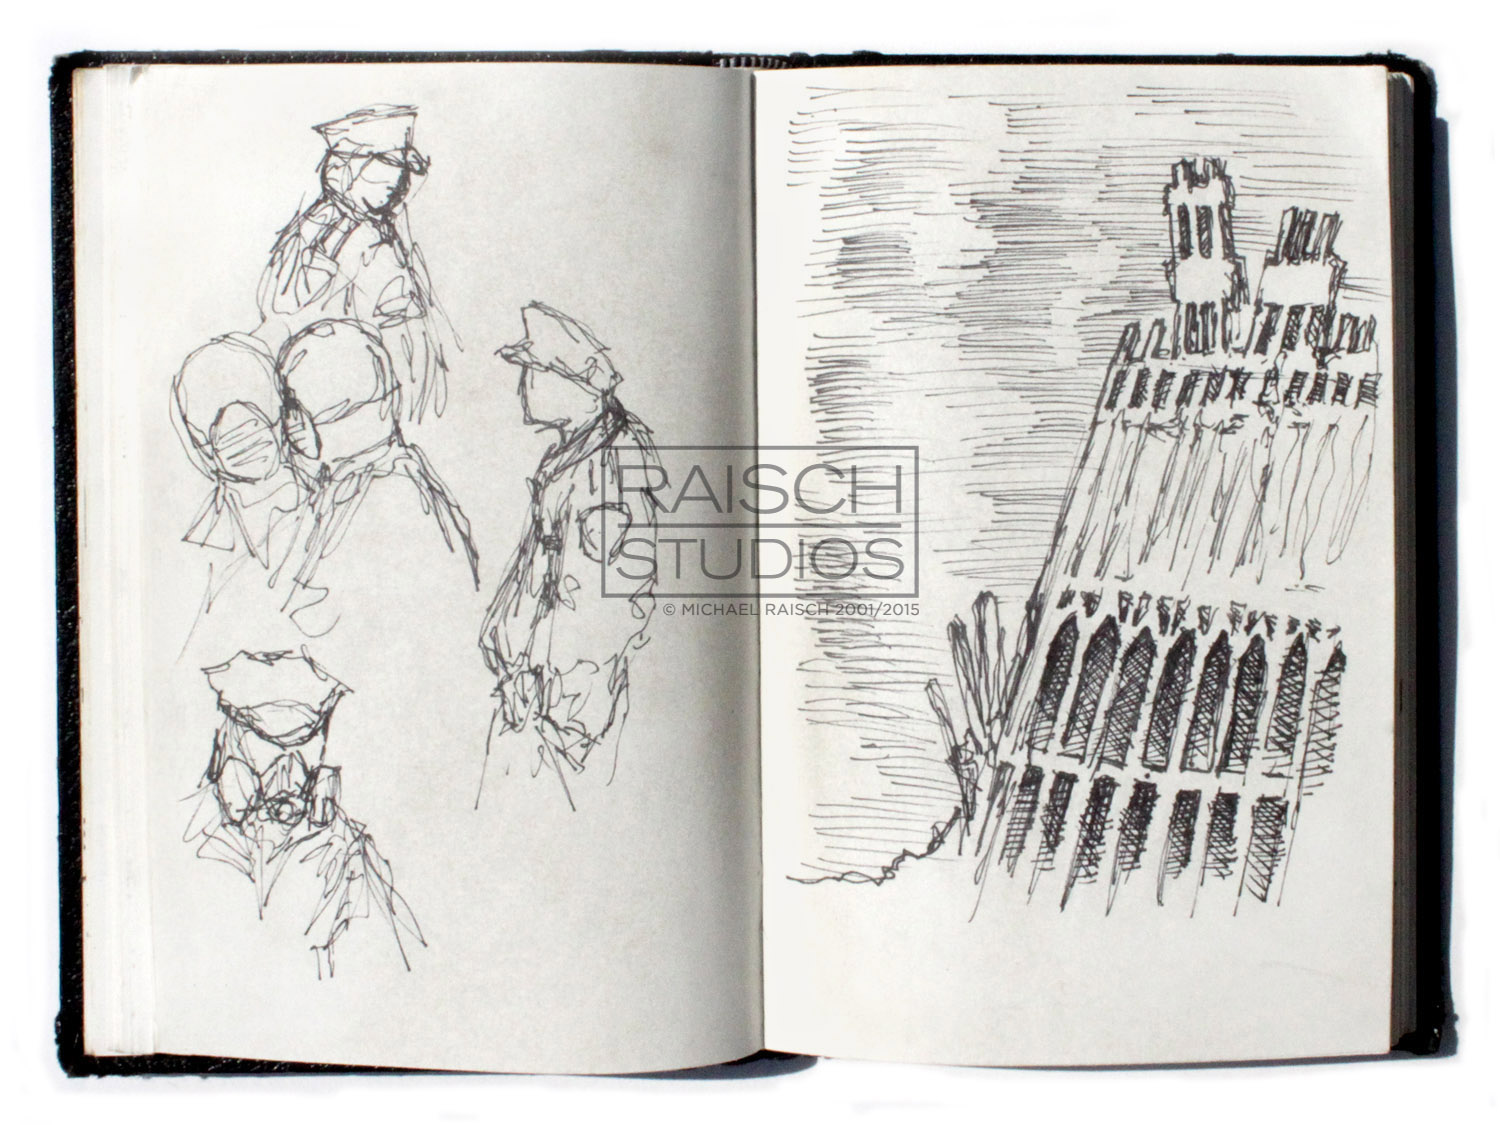 Original sketch of First Responders and the remains of the North Tower, November 3, 2001